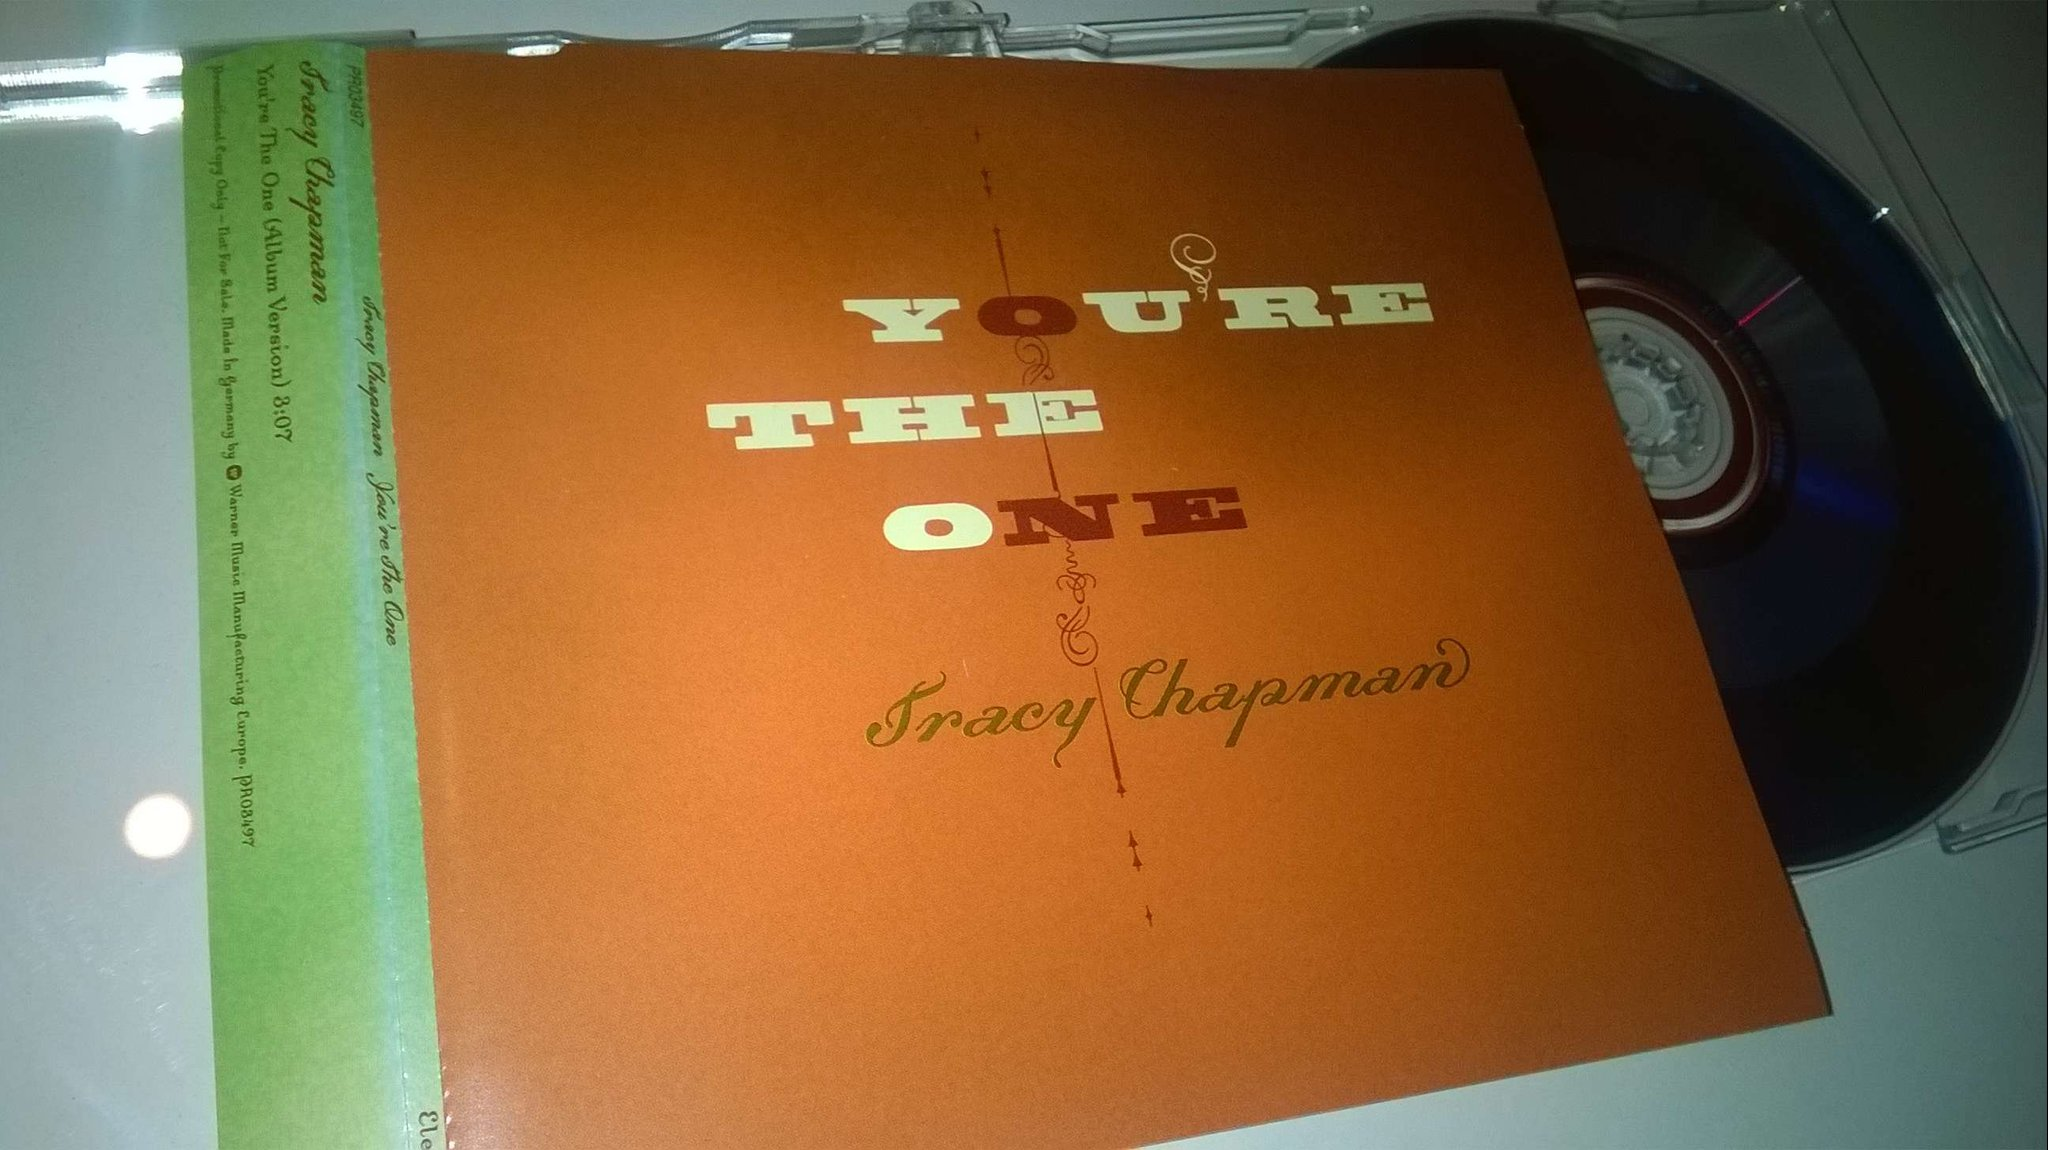 Tracy Chapman - You're The One, CD, Single, Promo